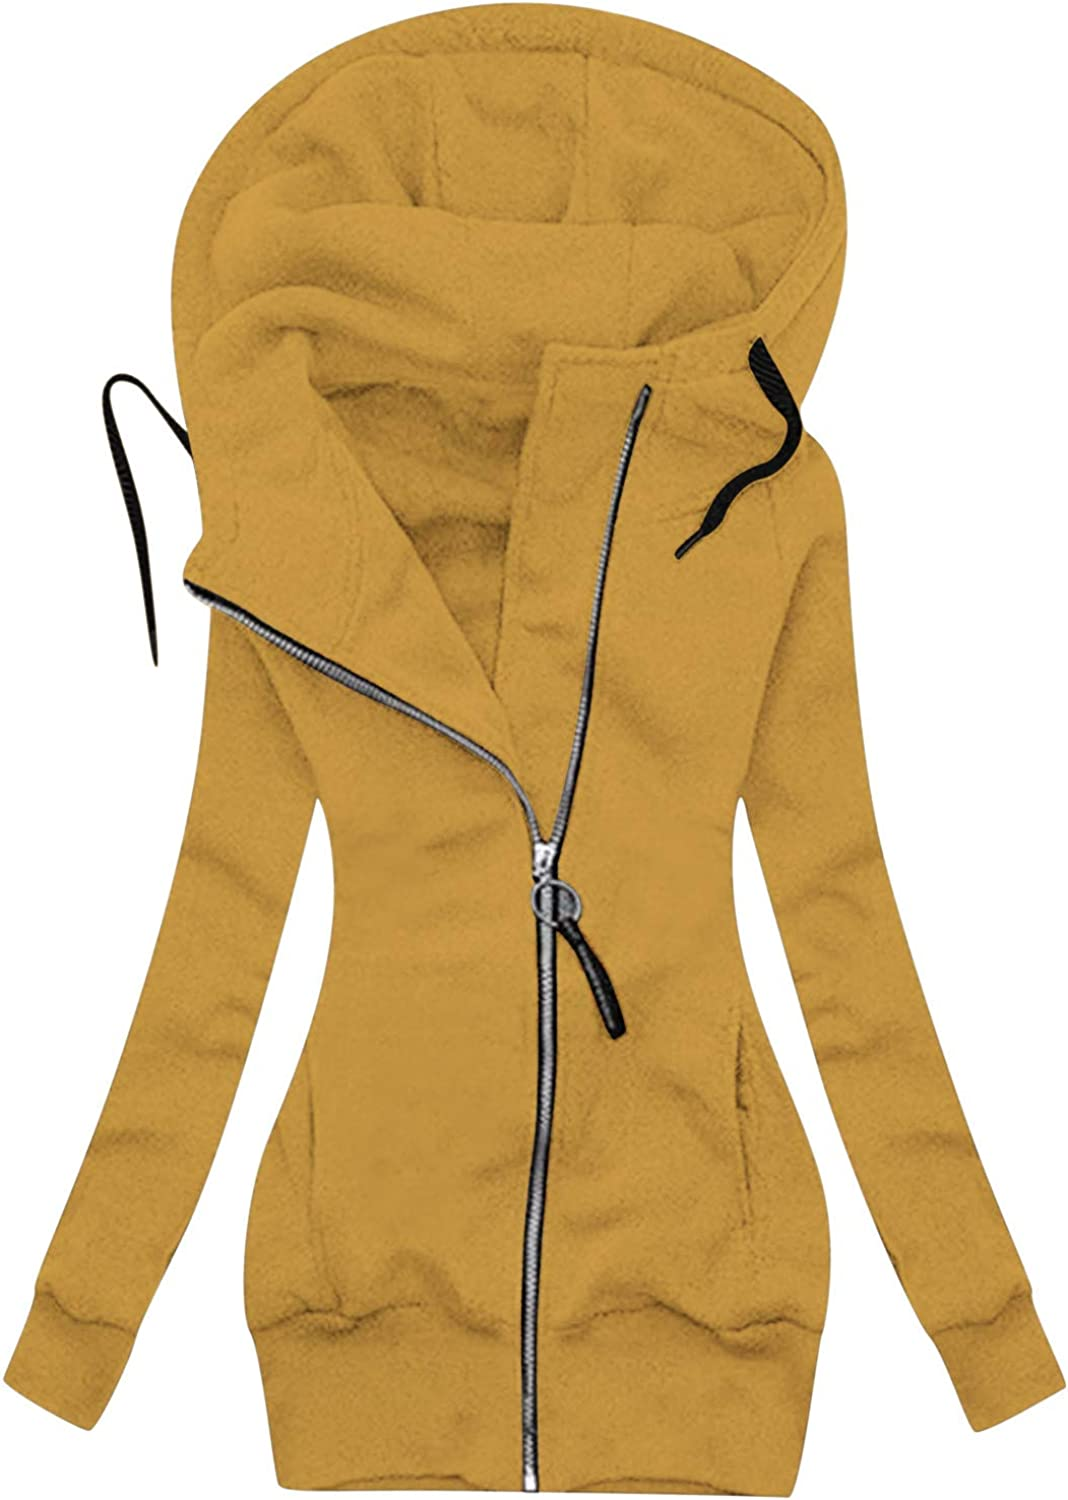 POTO Women Oversized Stitching Jackets Hoodie Casual Zip Up Pullover Tops Fluffy Fleece Outwear Coats with Pockets